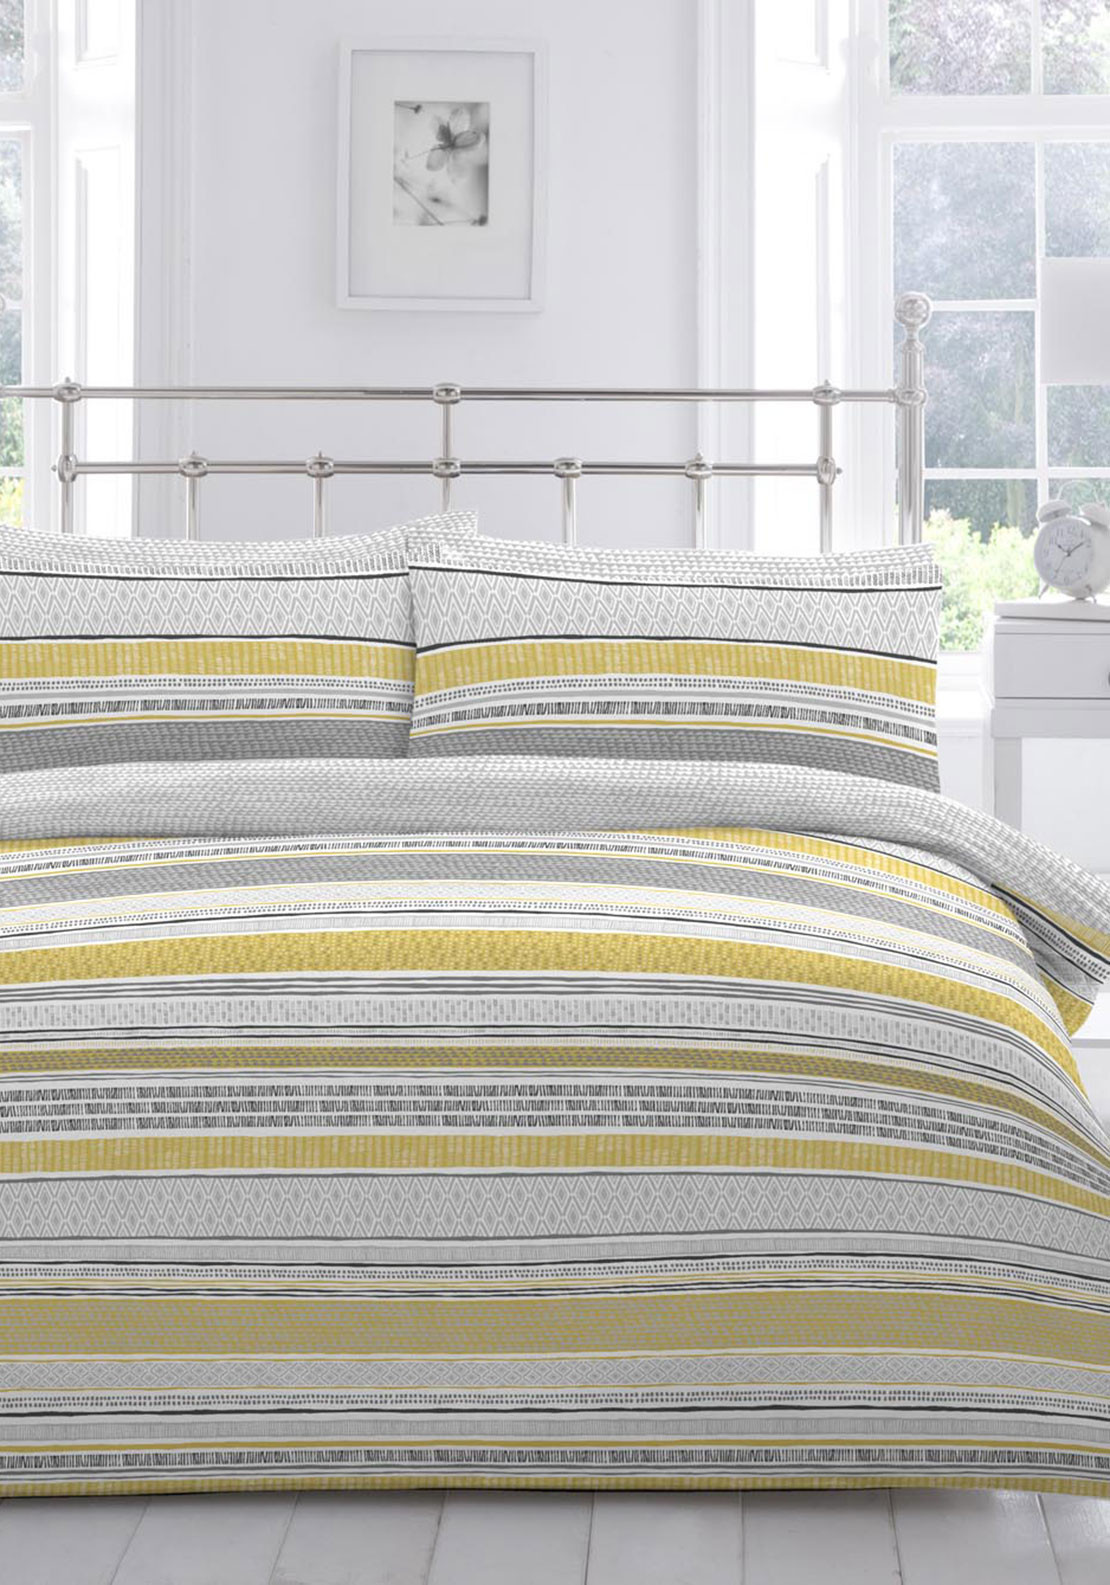 Nineteen11 Tanami Duvet Cover Set, Yellow Multi